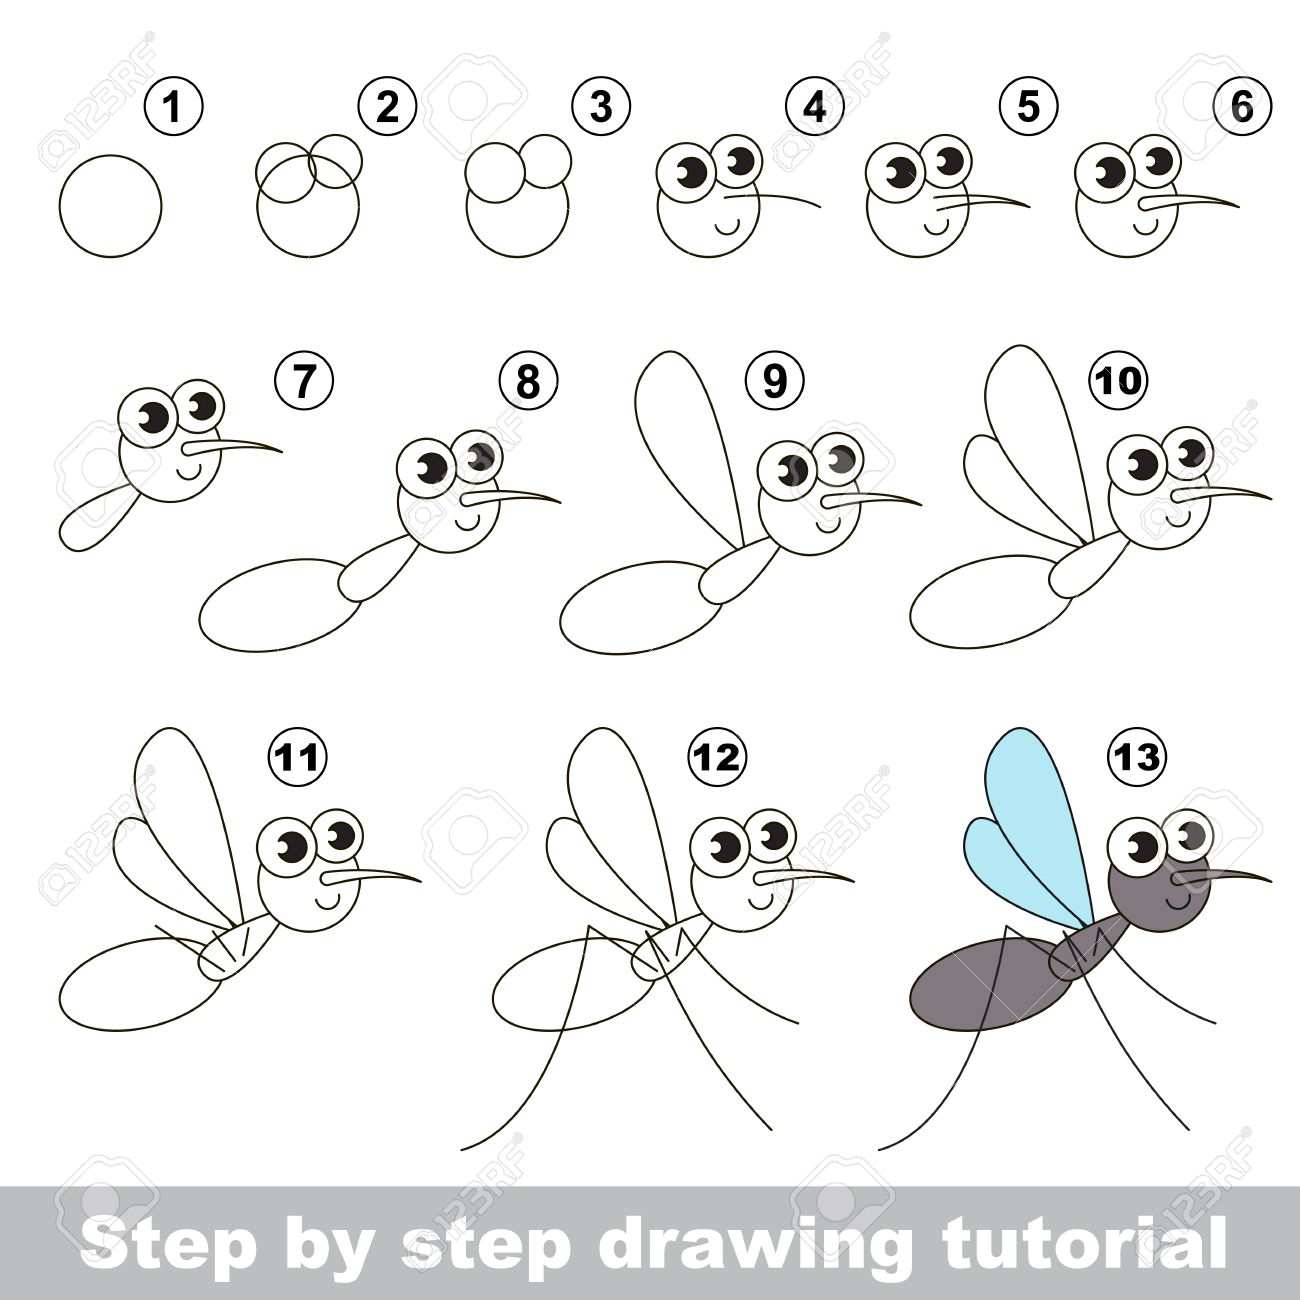 Drawing Tutorial For Children. Easy Educational Kid Game. Simple ...